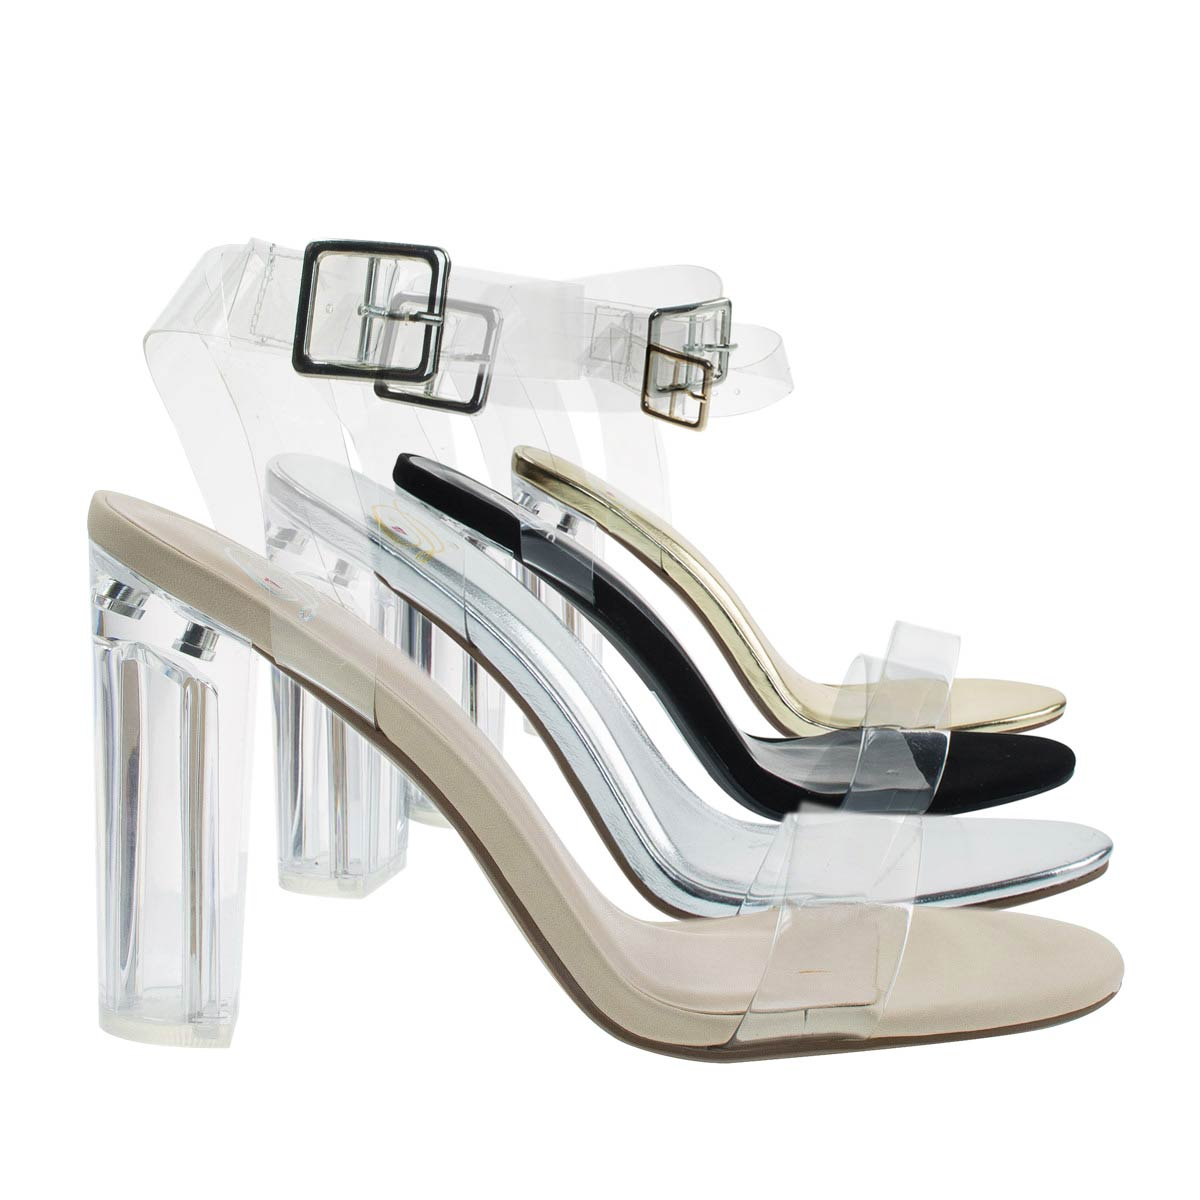 Kalif by Delicious, Women Dress Sandal Perspex Clear Block Heel, See Through Lucite Straps